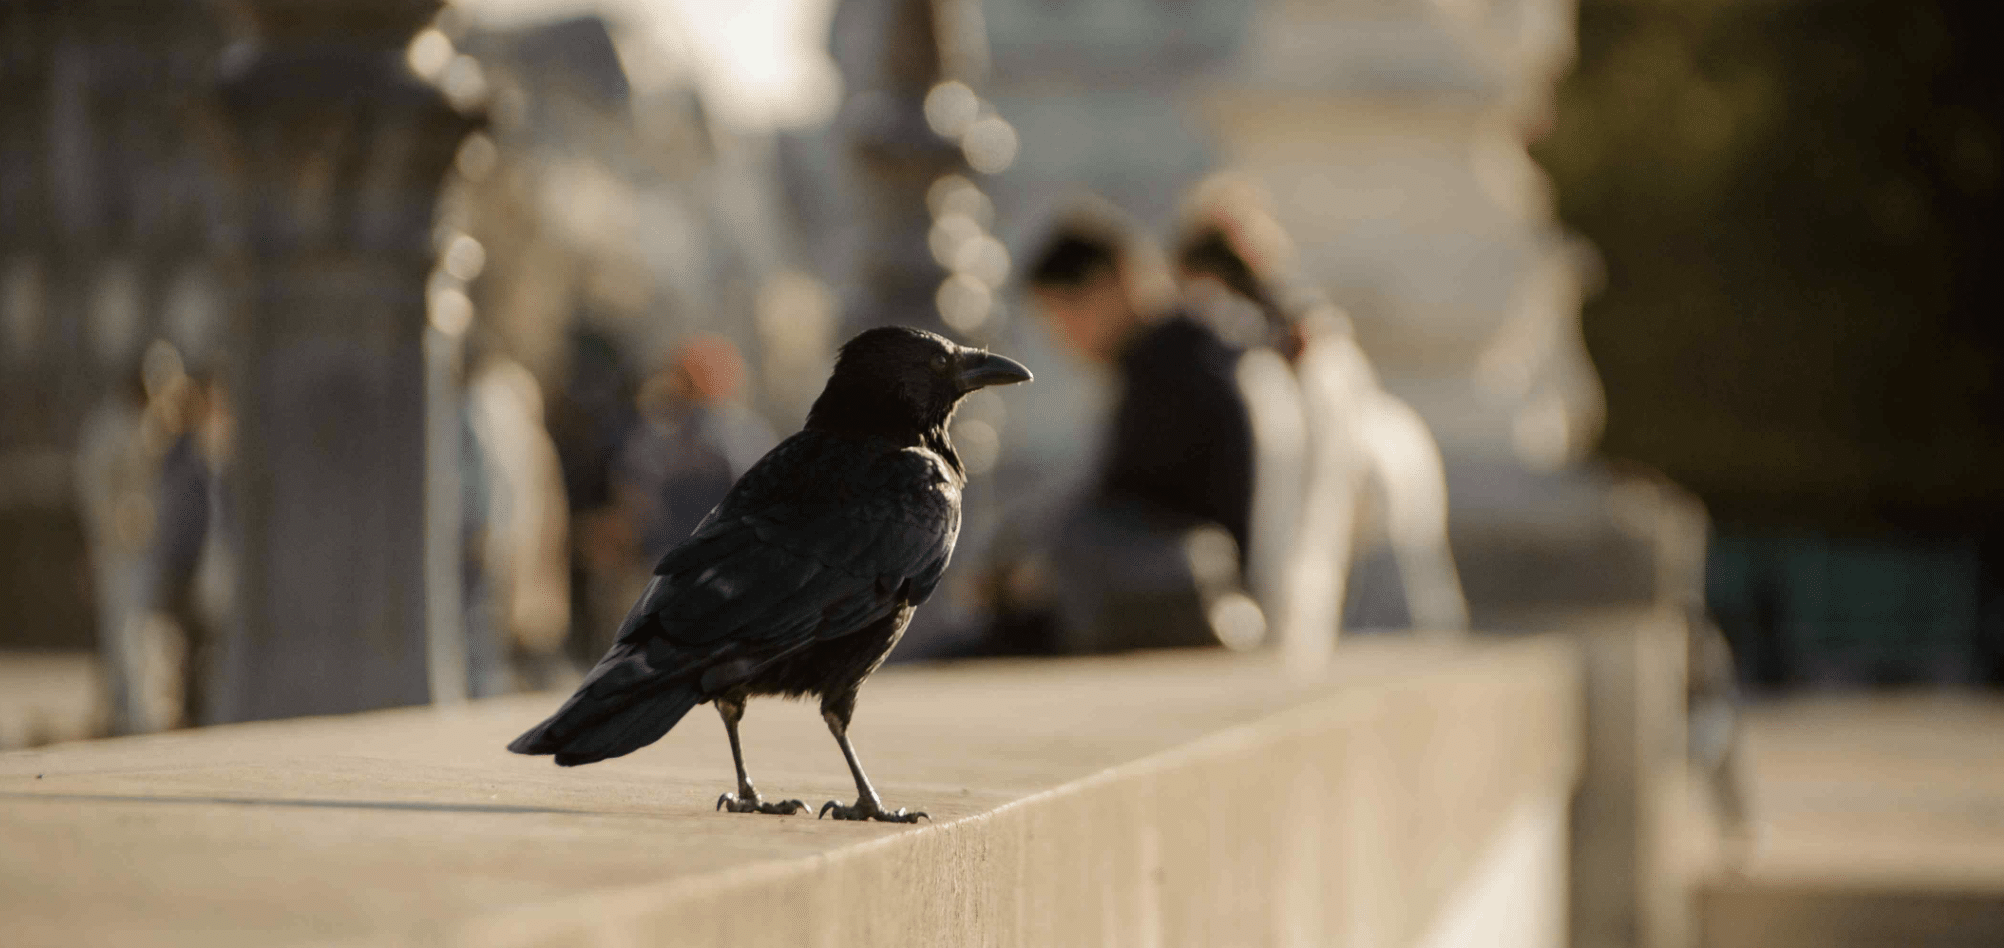 Crows often hold grudges against specific people